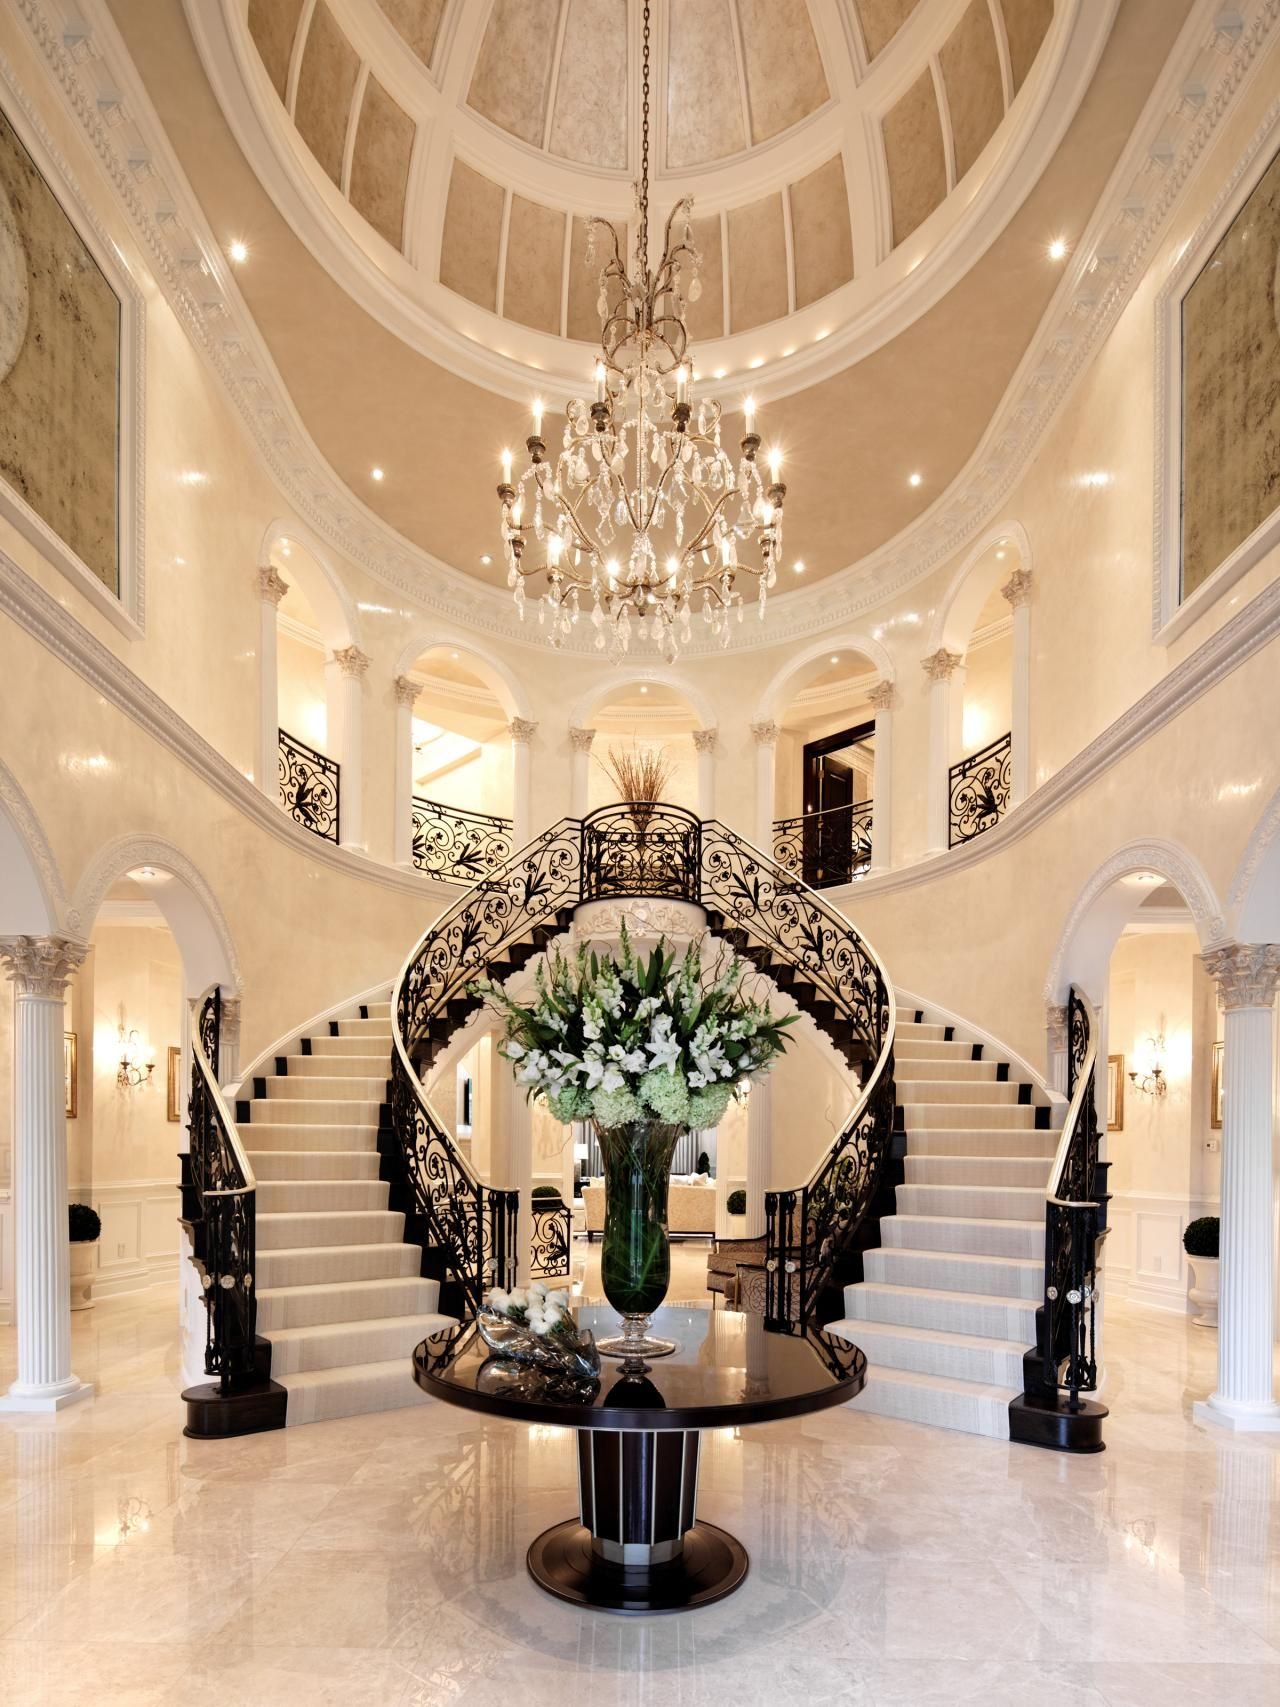 Modern Luxury Foyer : A spacious foyer with domed ceiling and double staircase